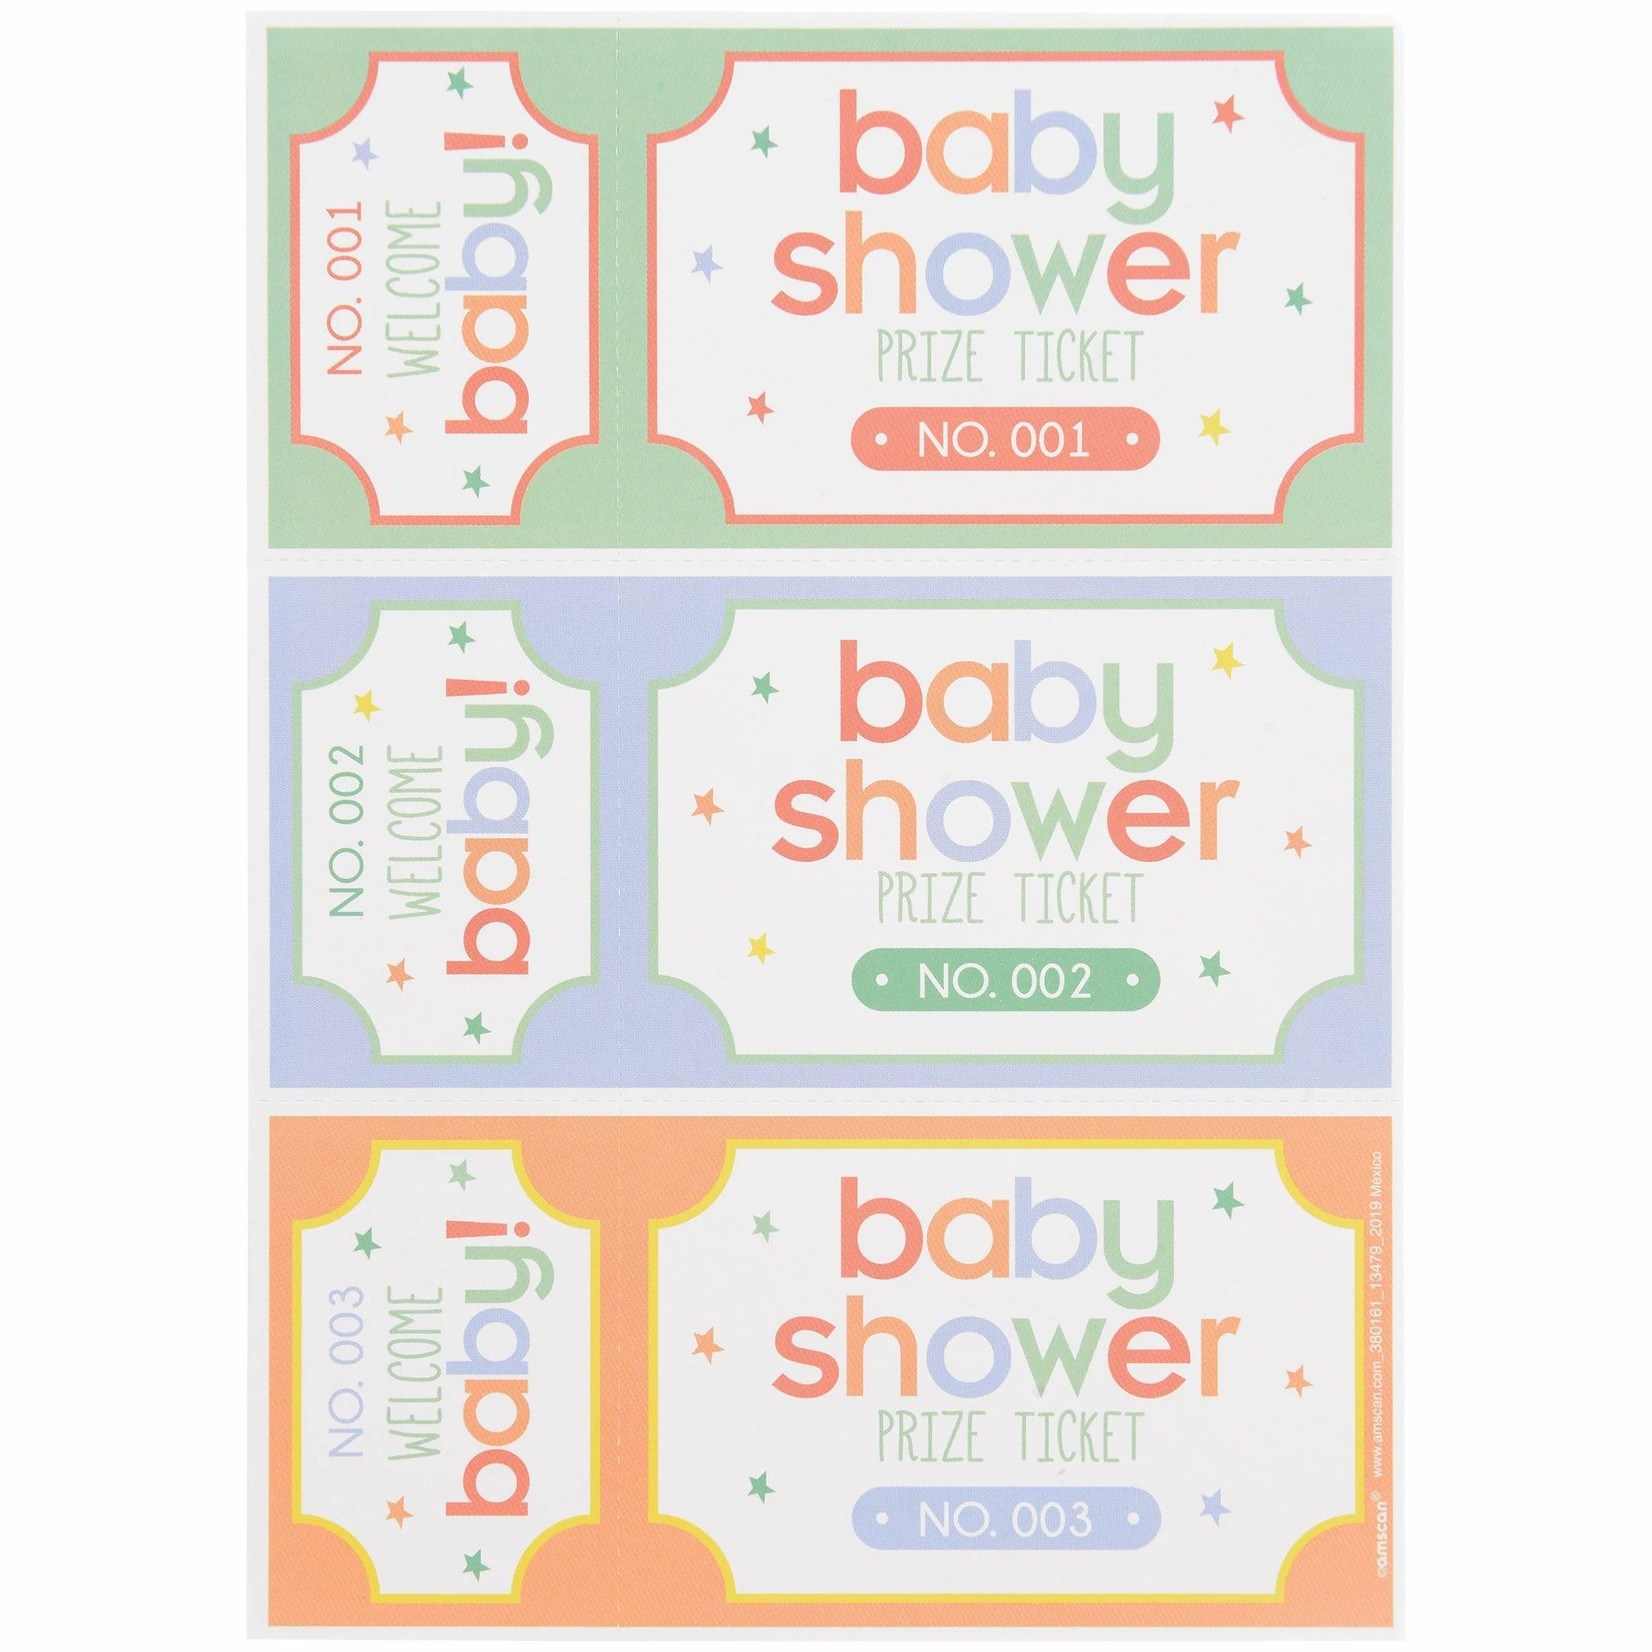 Baby Shower - Prize Tickets - 16 Sheets